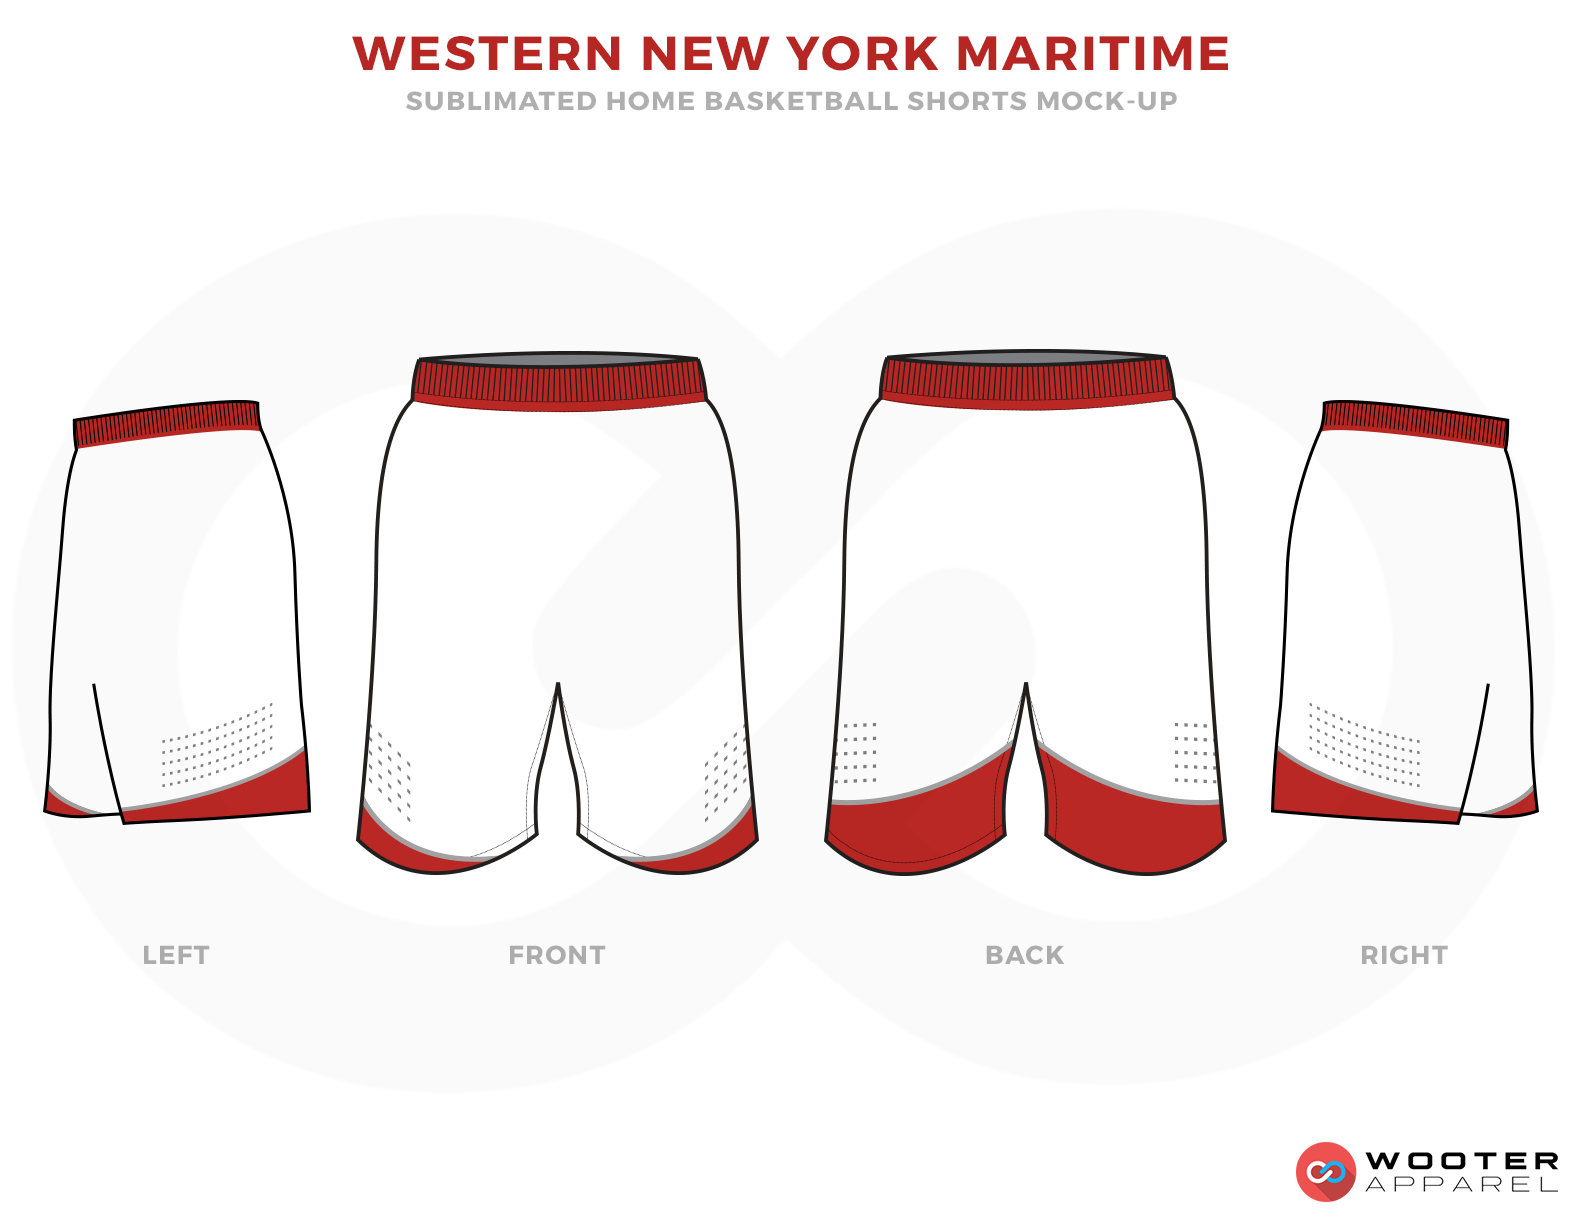 WESTERN NEW YORK MARITIME White and Red Basketball Uniforms, Shorts